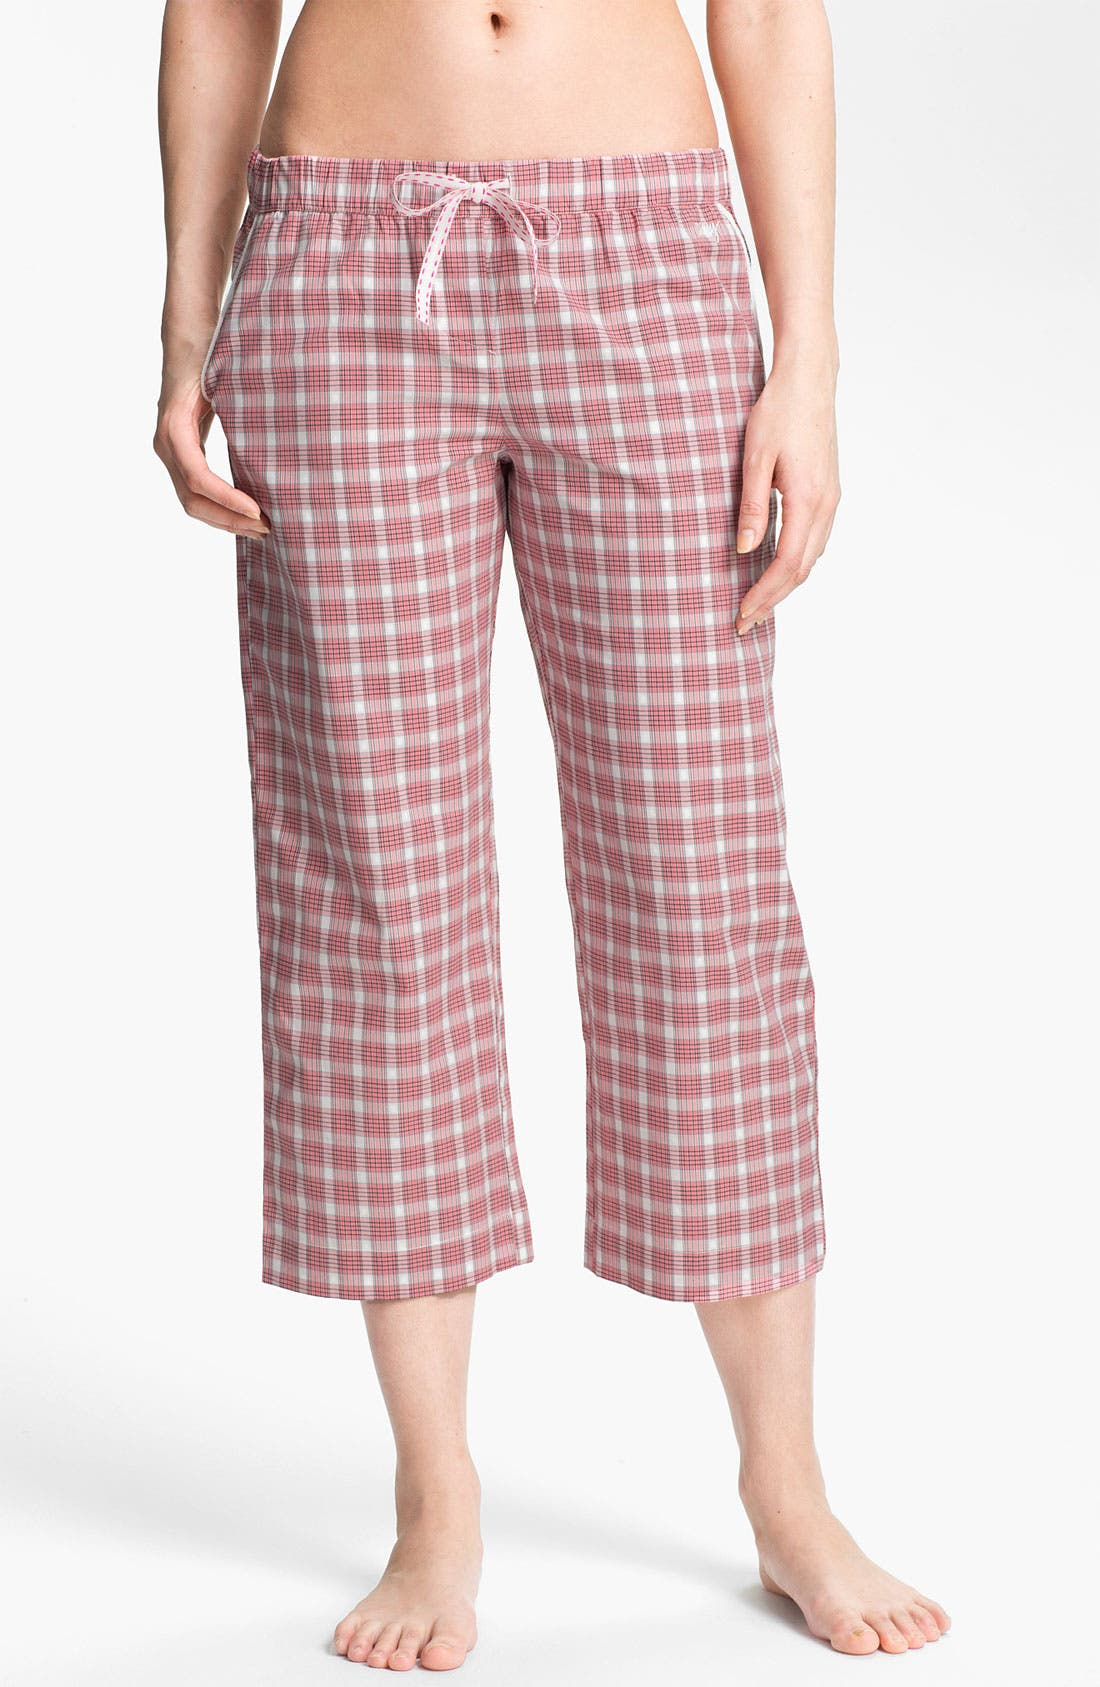 Alternate Image 1 Selected - DKNY 'Sugar Rush' Capri Pants